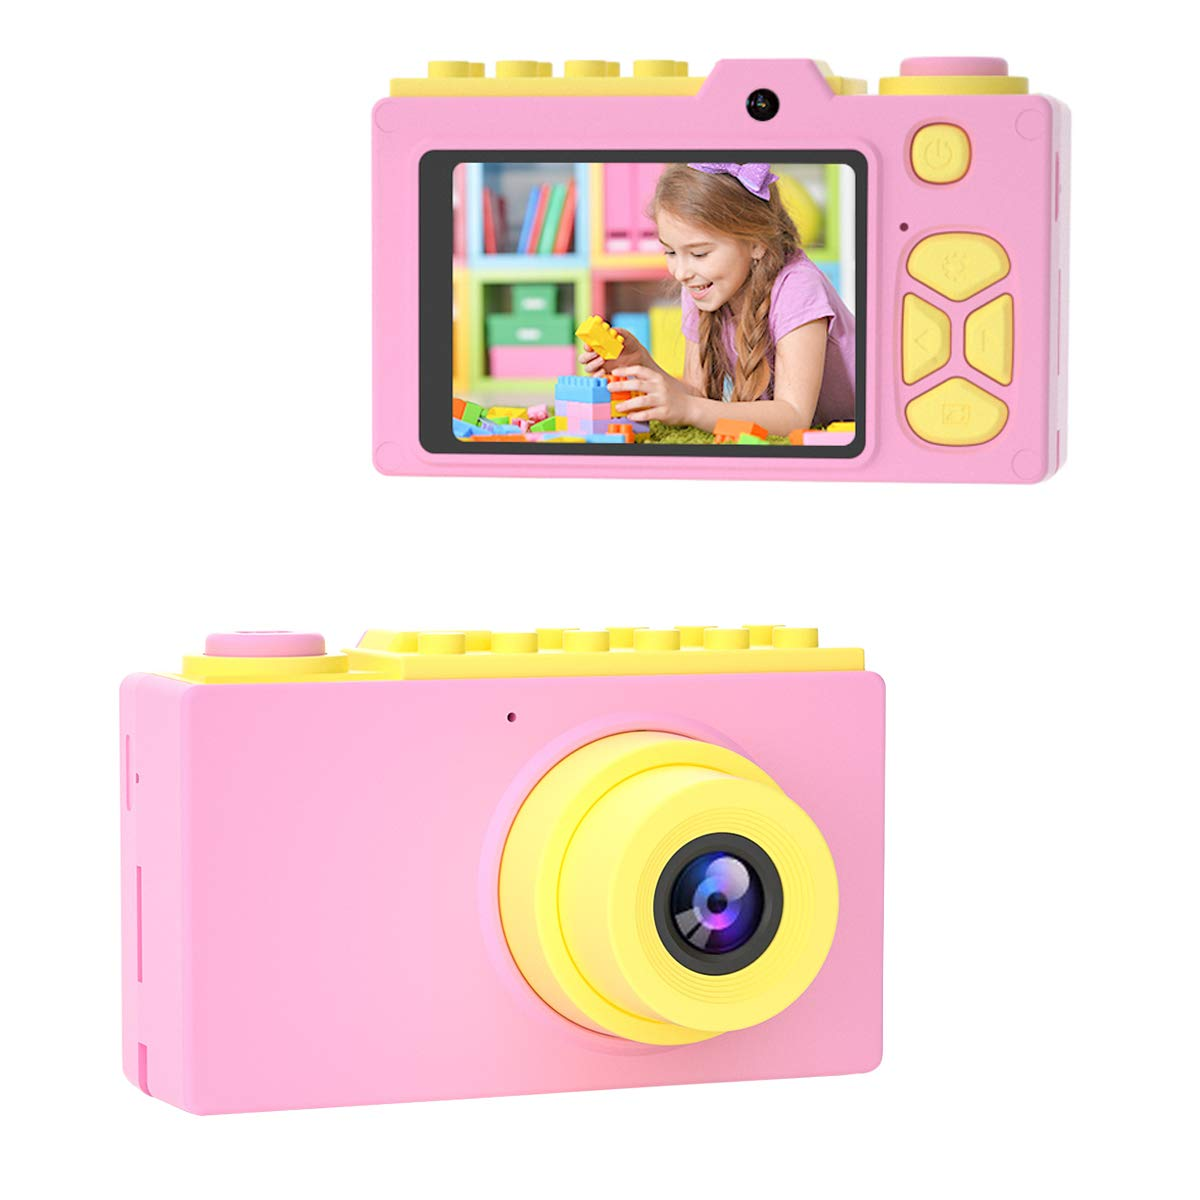 Children's Day Gifts, Kids Camera Gifts for Girls Boys 4-12 Years Old Children Selfie Digital Cameras HD 1080P Mini Video Camera for Birthday Party Home Indoor Play with SD Card (Pink)